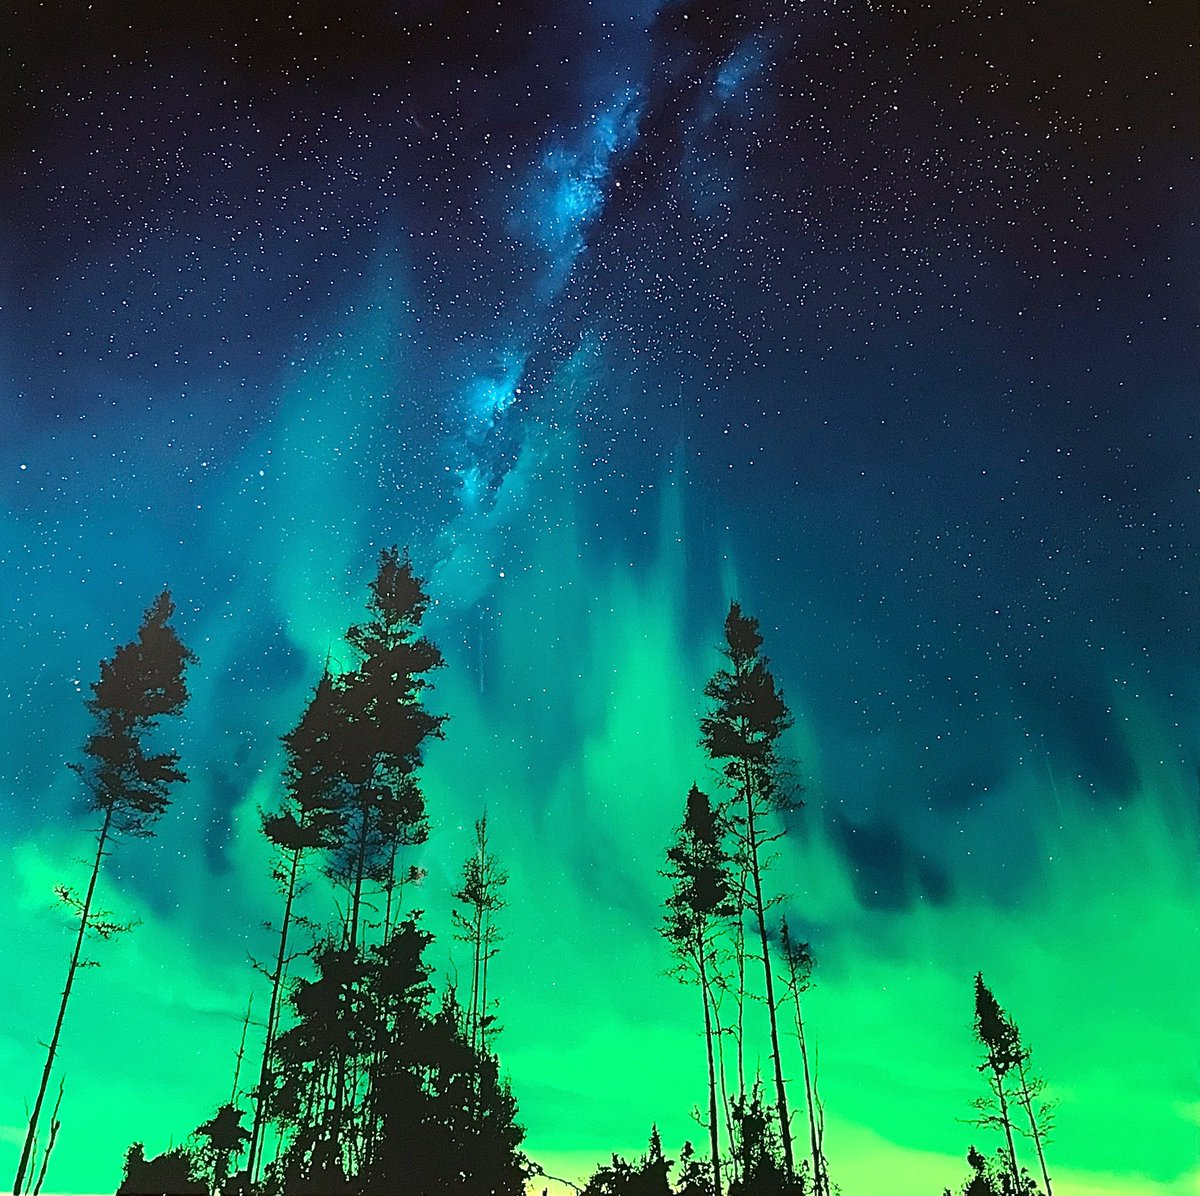 New original piece Iceland inspired 'forever and ever' dramatic Aurora gets me every time...#oilpainting #reversepaintingonglass #landscapeart #auroraborealis #northernlights #aurora #nightsky #stars #milkyway #trees #sunset #sunrise #art #artist #artgallery #castlefineart